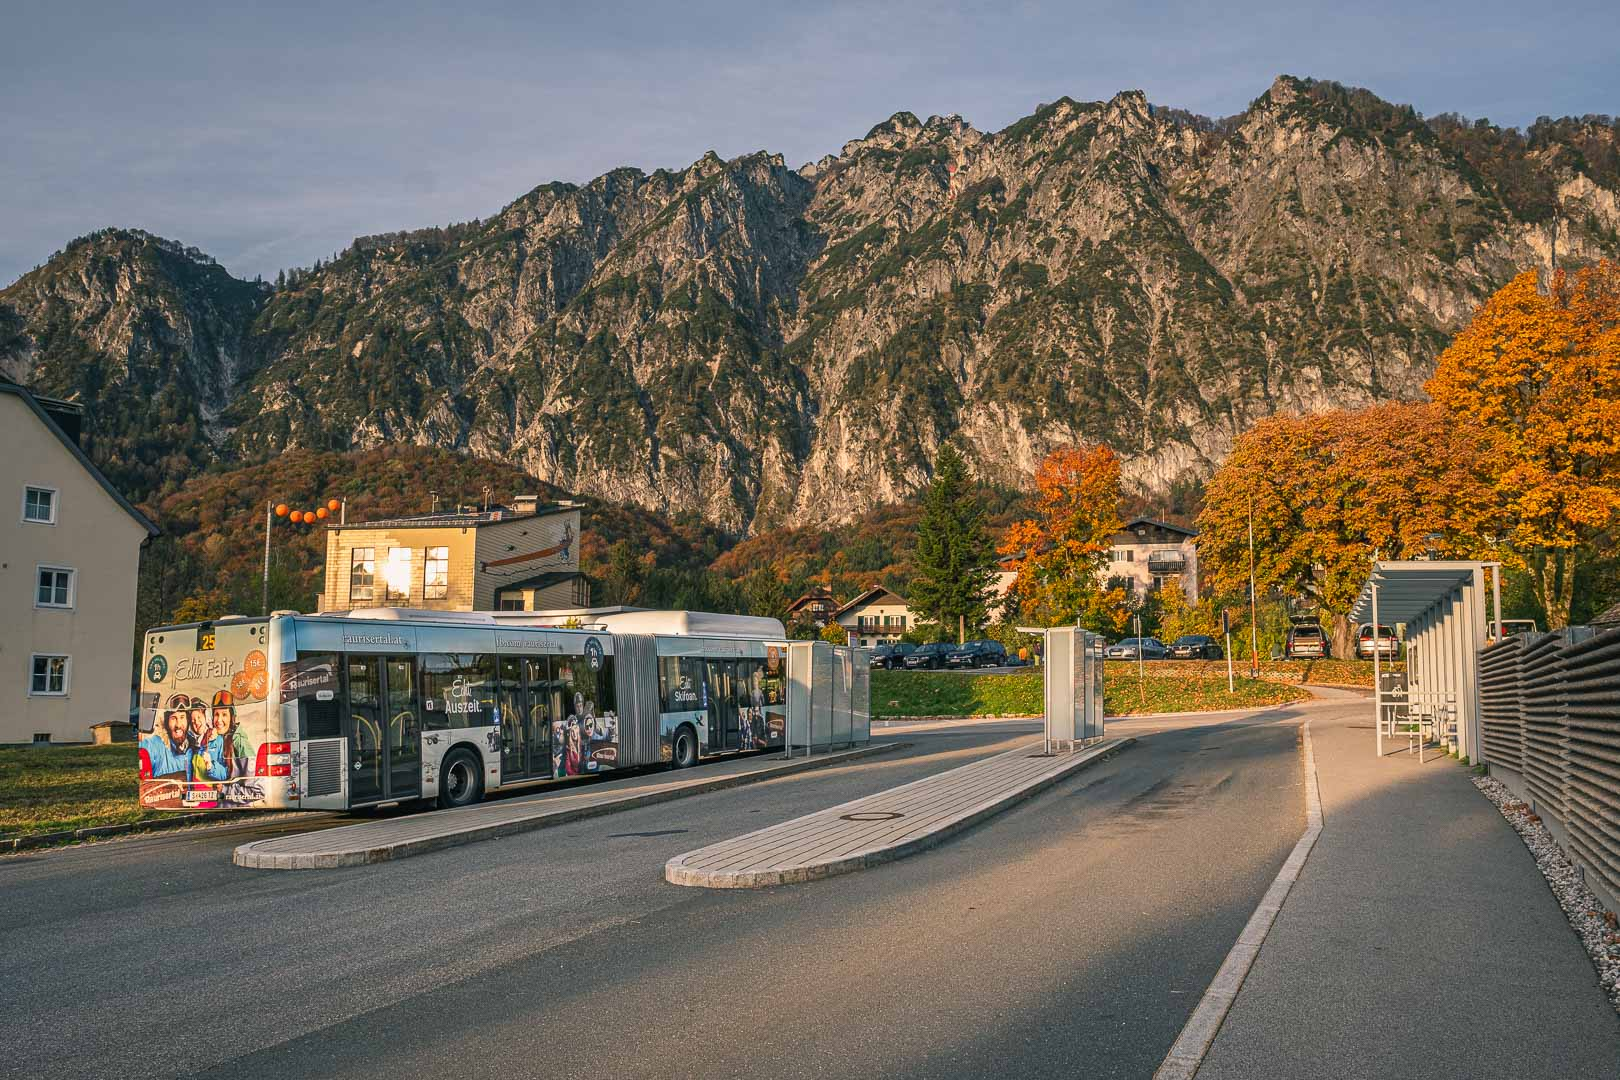 Bus number 25 in front of the Untersberg cable car in St Leonhard